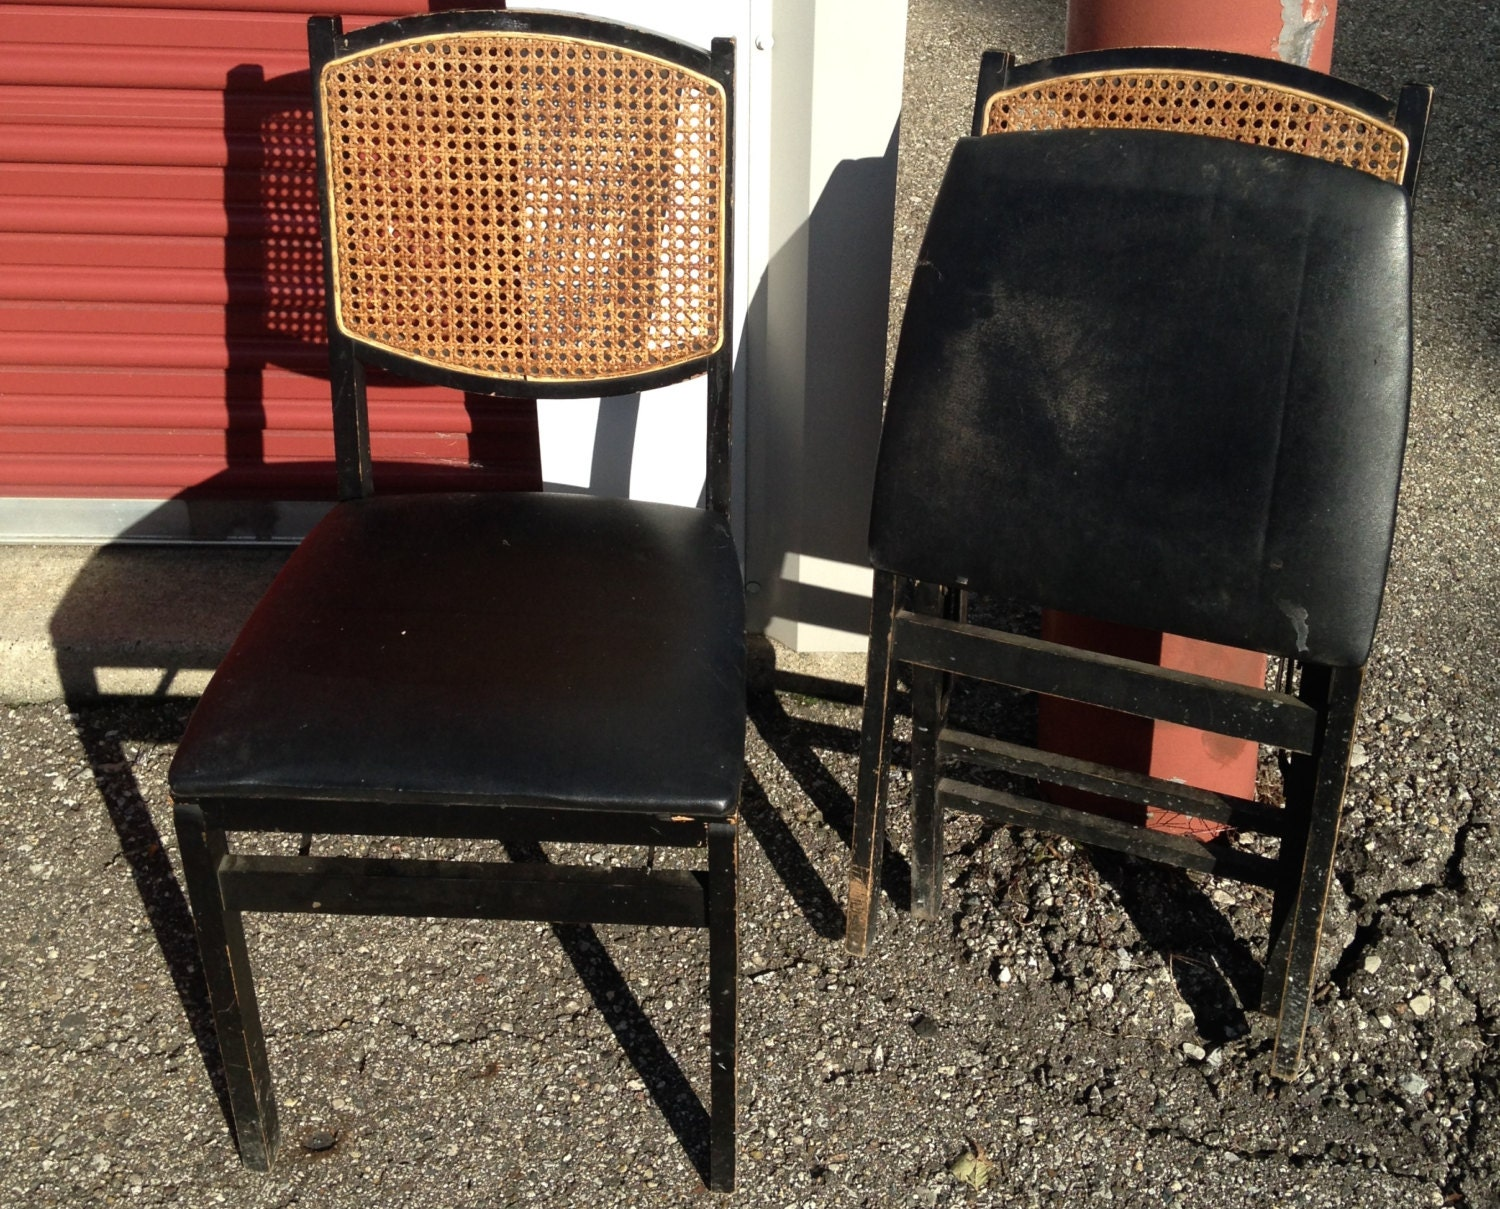 Vintage Black Wooden And Wicker Folding Chairs By